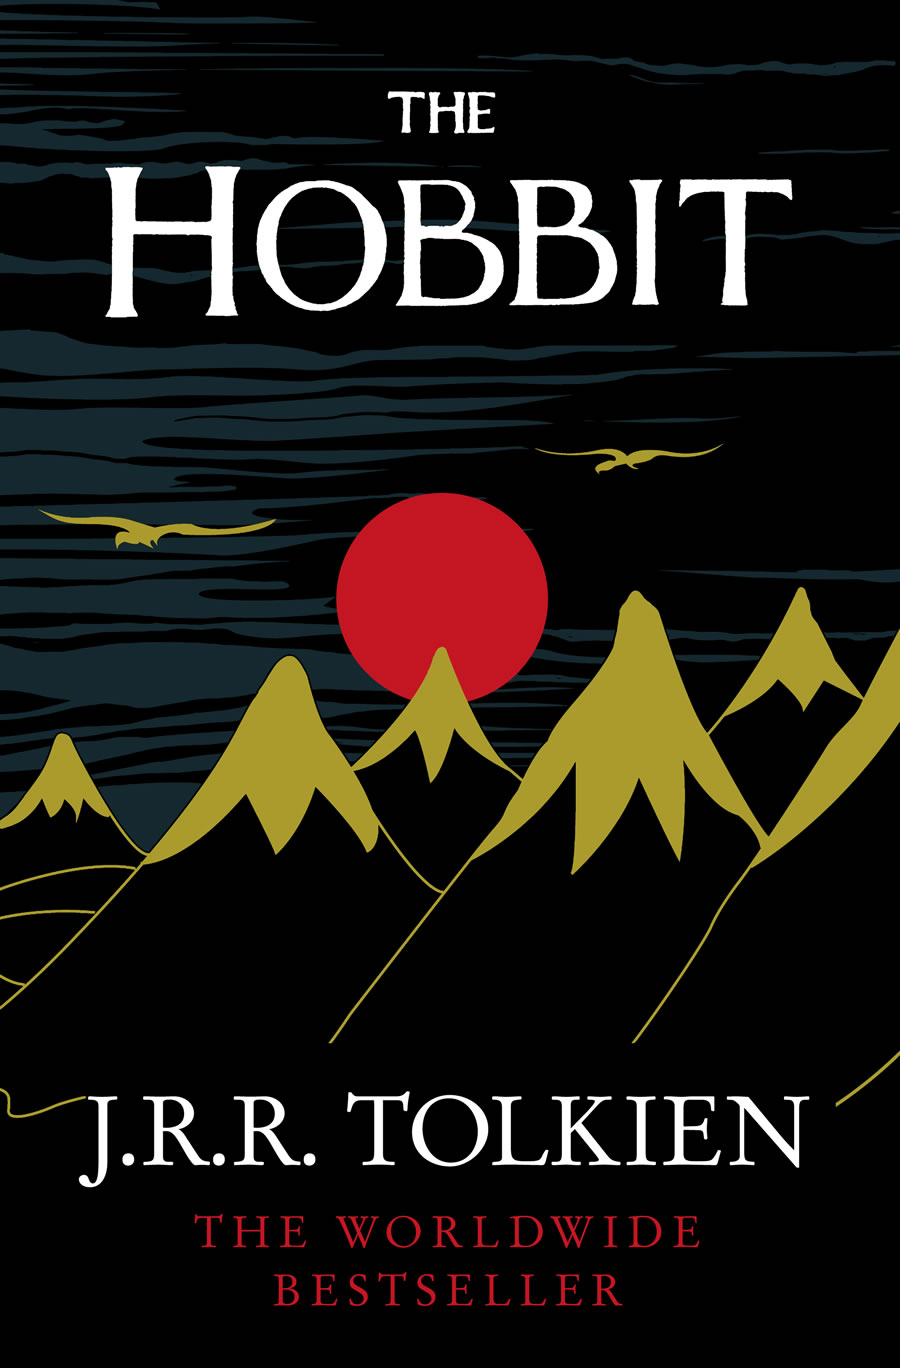 book review the hobbit The hobbit: an unexpected journey is a 2012 epic high fantasy adventure film directed by peter jackson receiving mixed to positive reviews from critics, the film was nominated for three academy awards for best visual effects.